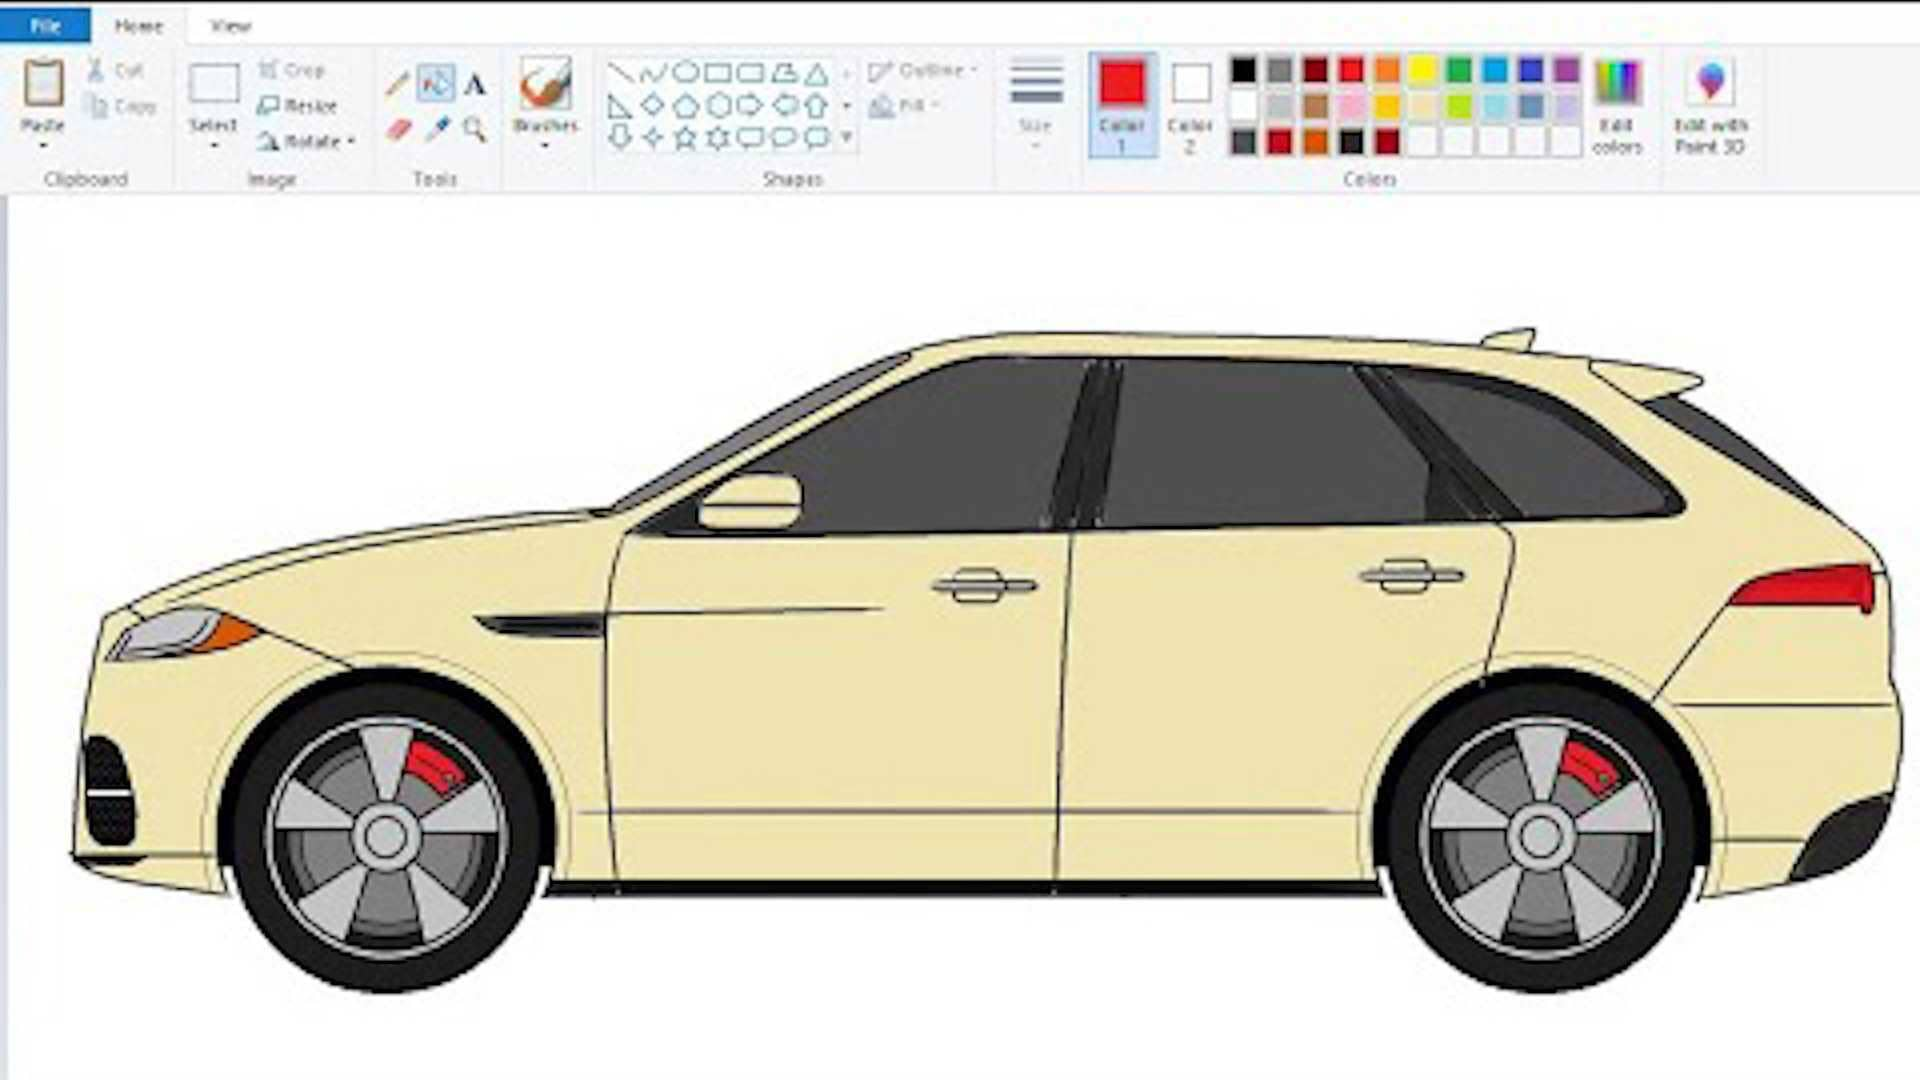 beingnandish-s-cars-drawn-in-microsoft-paintq